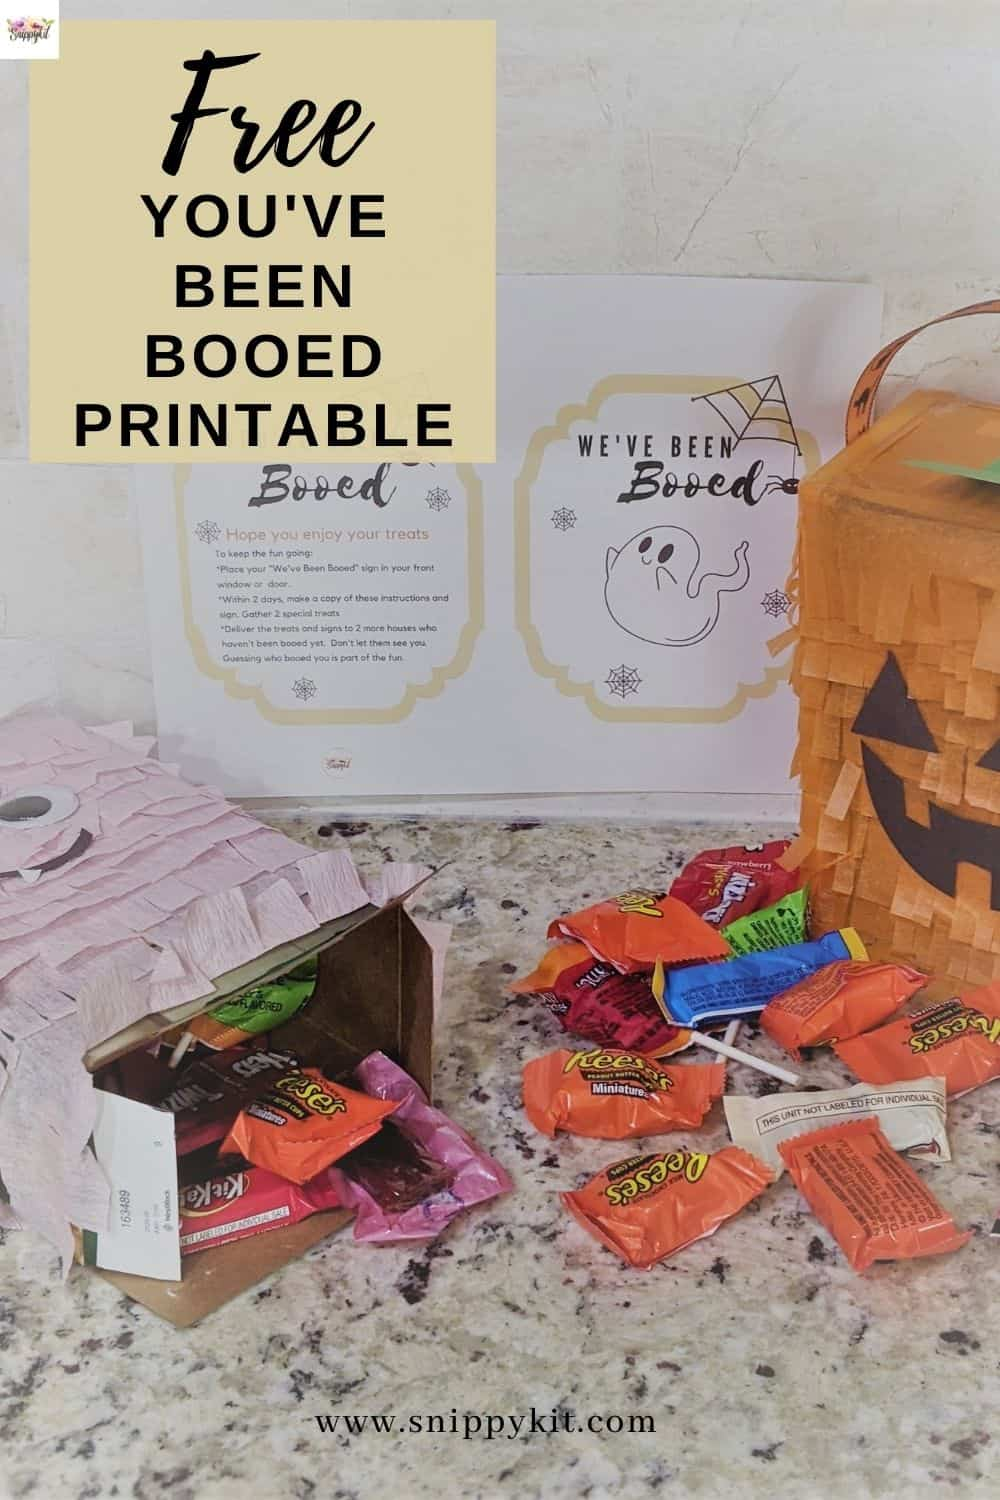 "Grab your favorite treats and get ready to surprise friends and neighbors with this fun You've Been Booed Halloween Family Activity. It's the perfect way to get kids of all ages involved in spreading light and joy during the Halloween season. Includes free printable ""Boo"" tags that are easy to print, pair with a few goodies and watch the Halloween cheer spread."